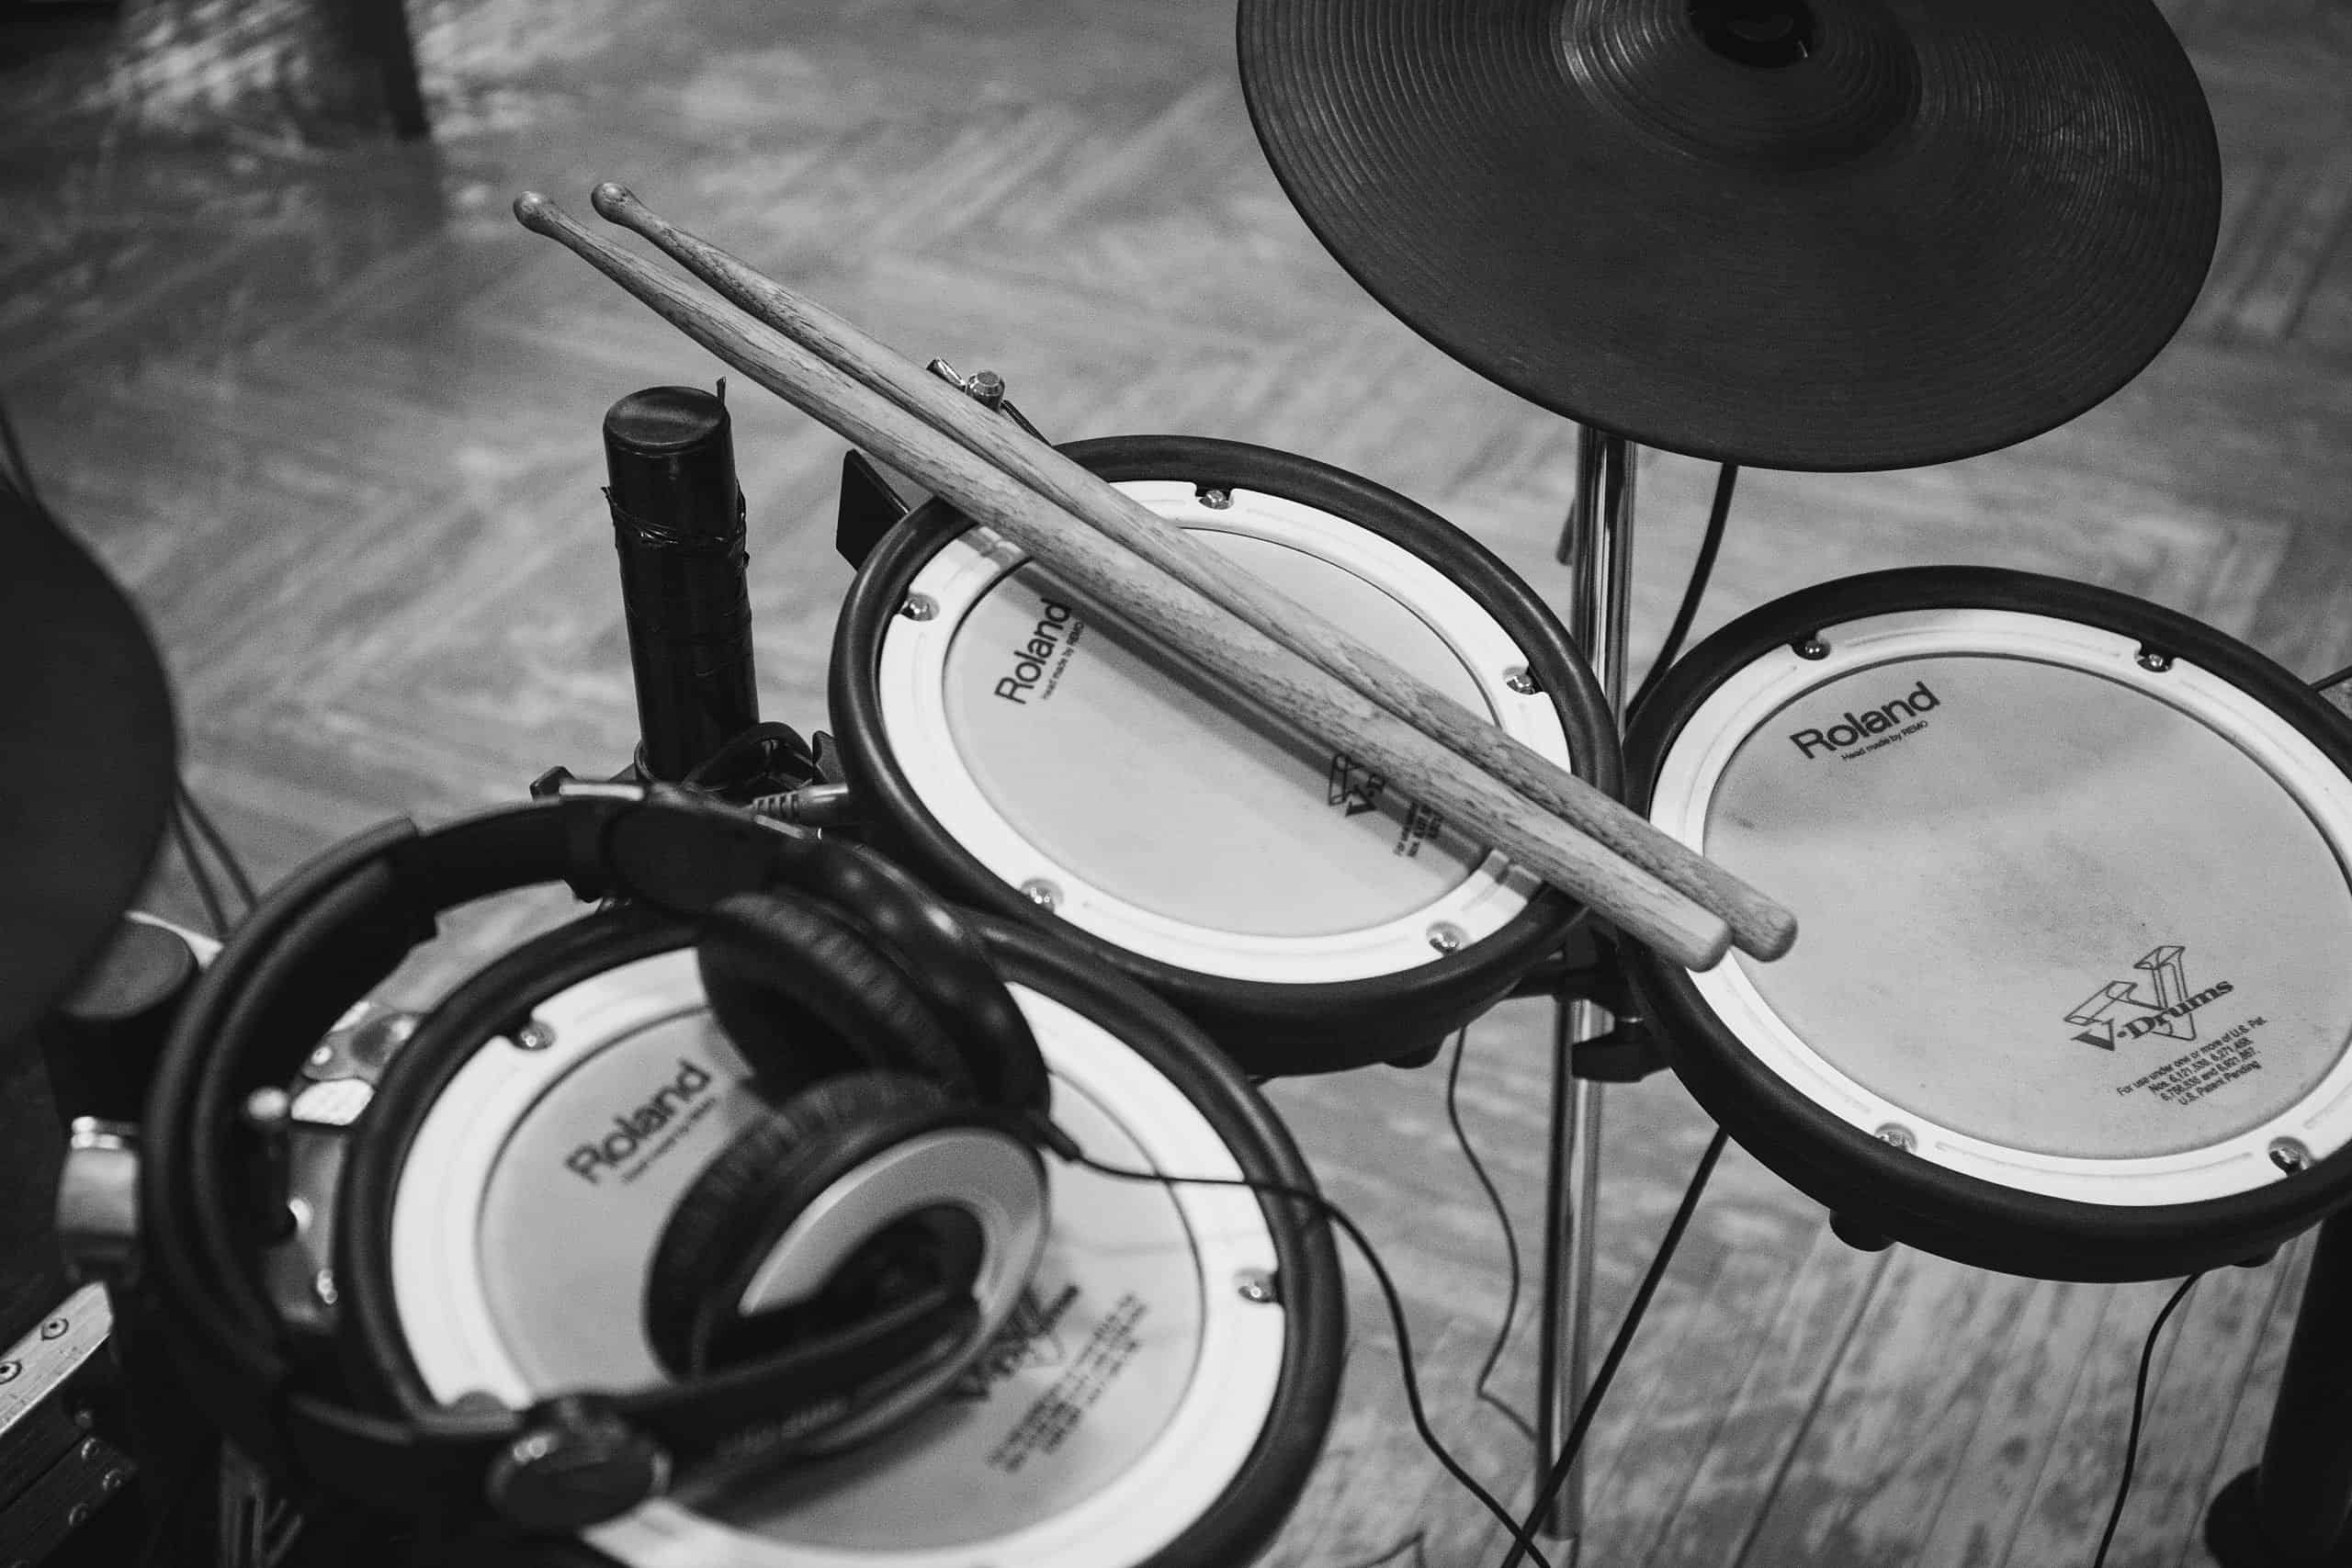 Roland drumset in black and white